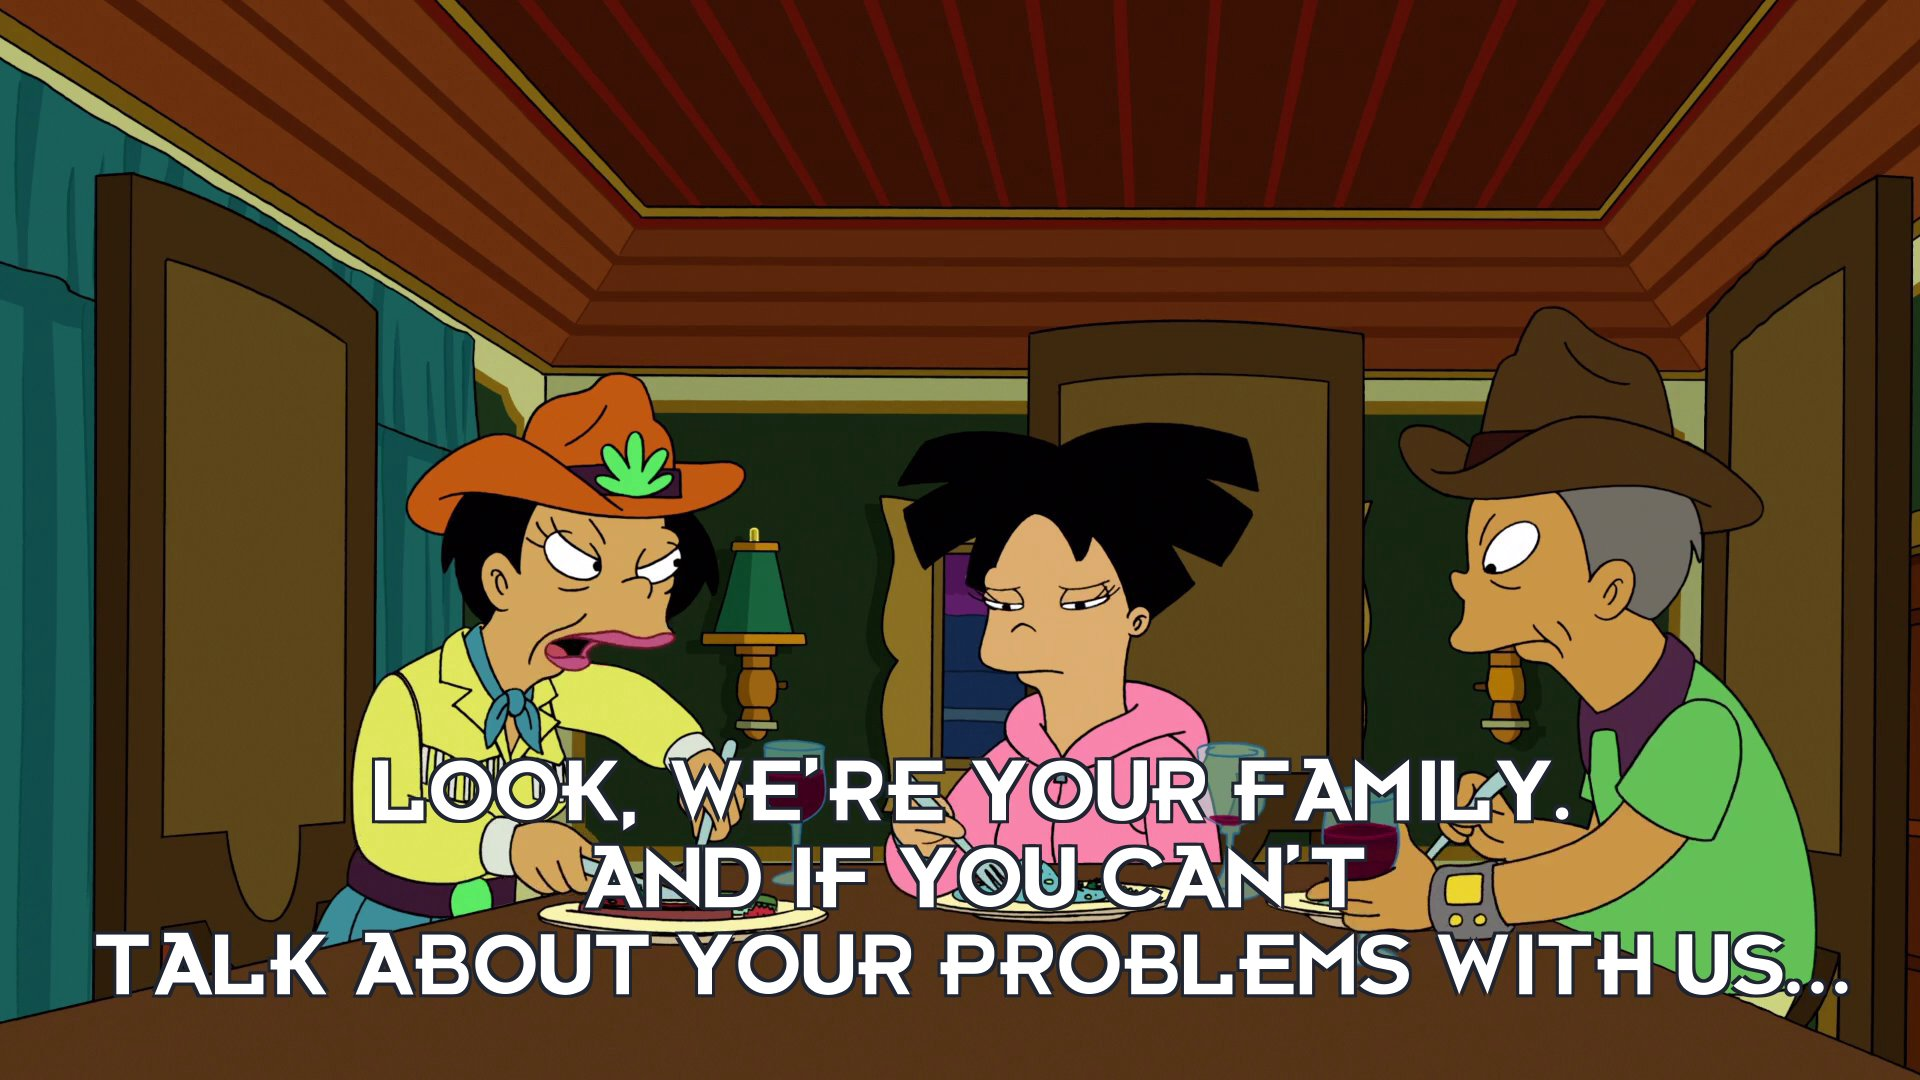 Inez Wong: Look, we're your family. And if you can't talk about your problems with us...